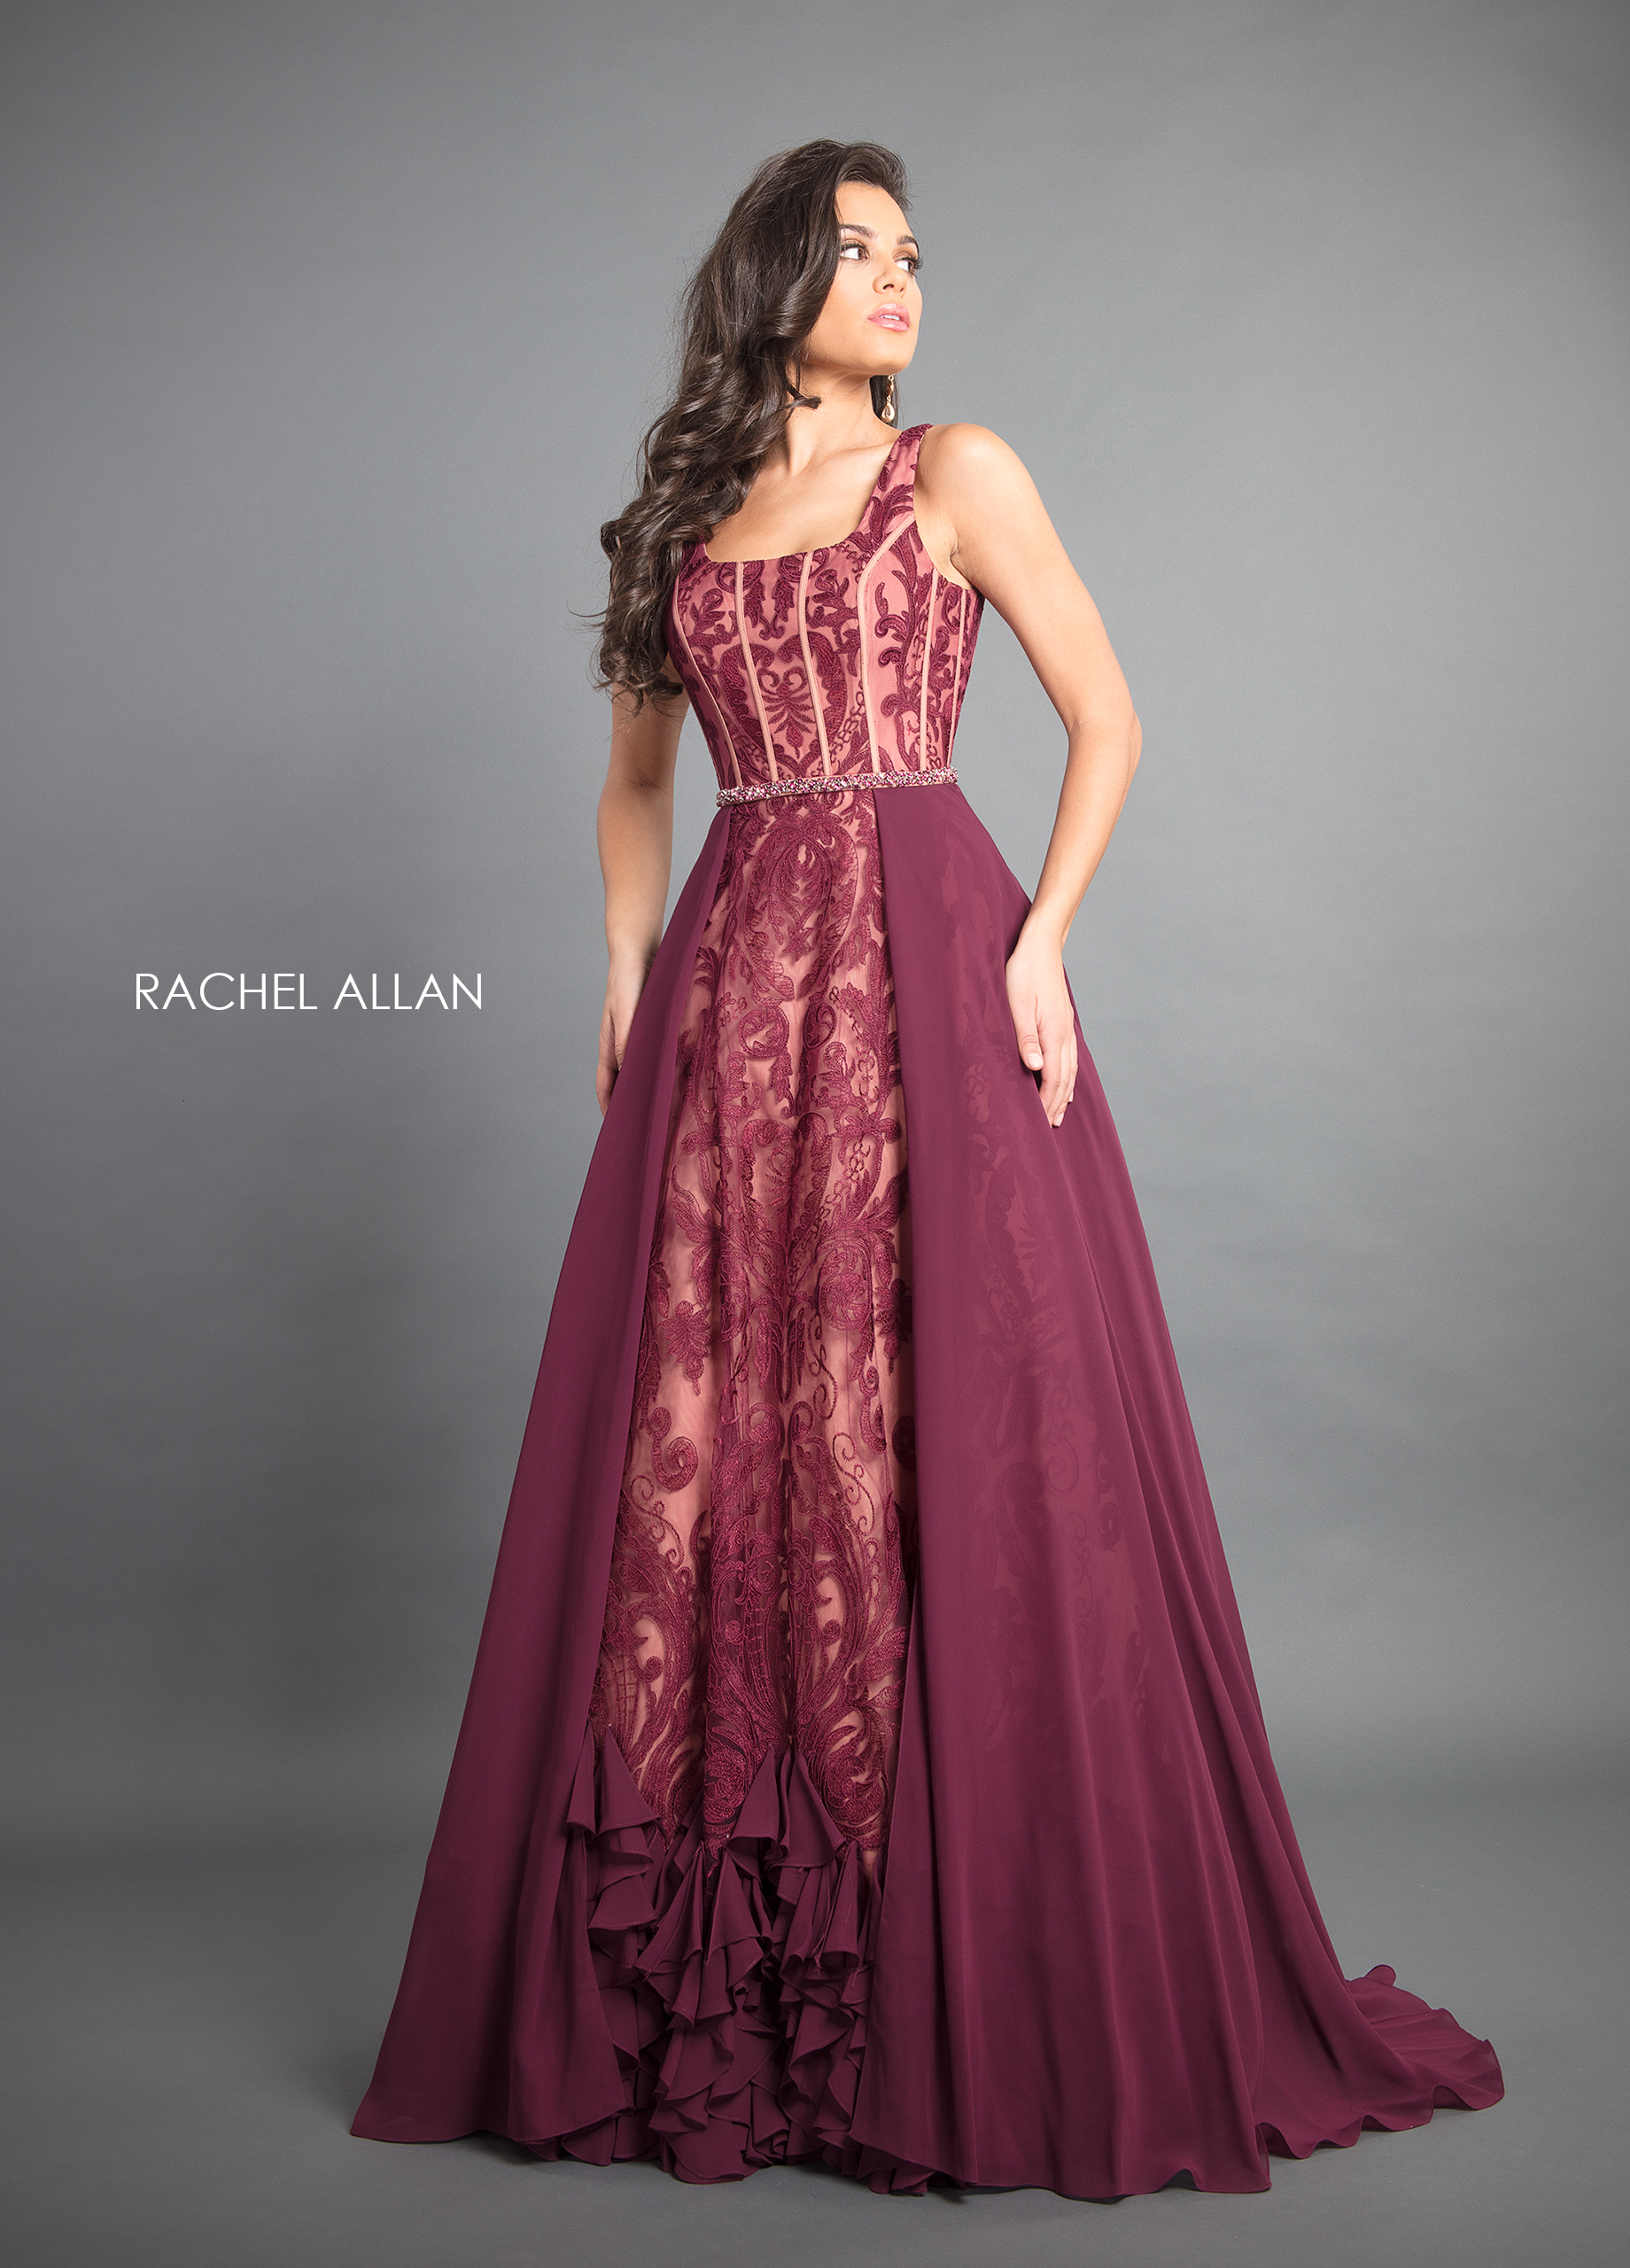 Scoop Neck Skirt With Overlay Couture Dresses in Purple Color